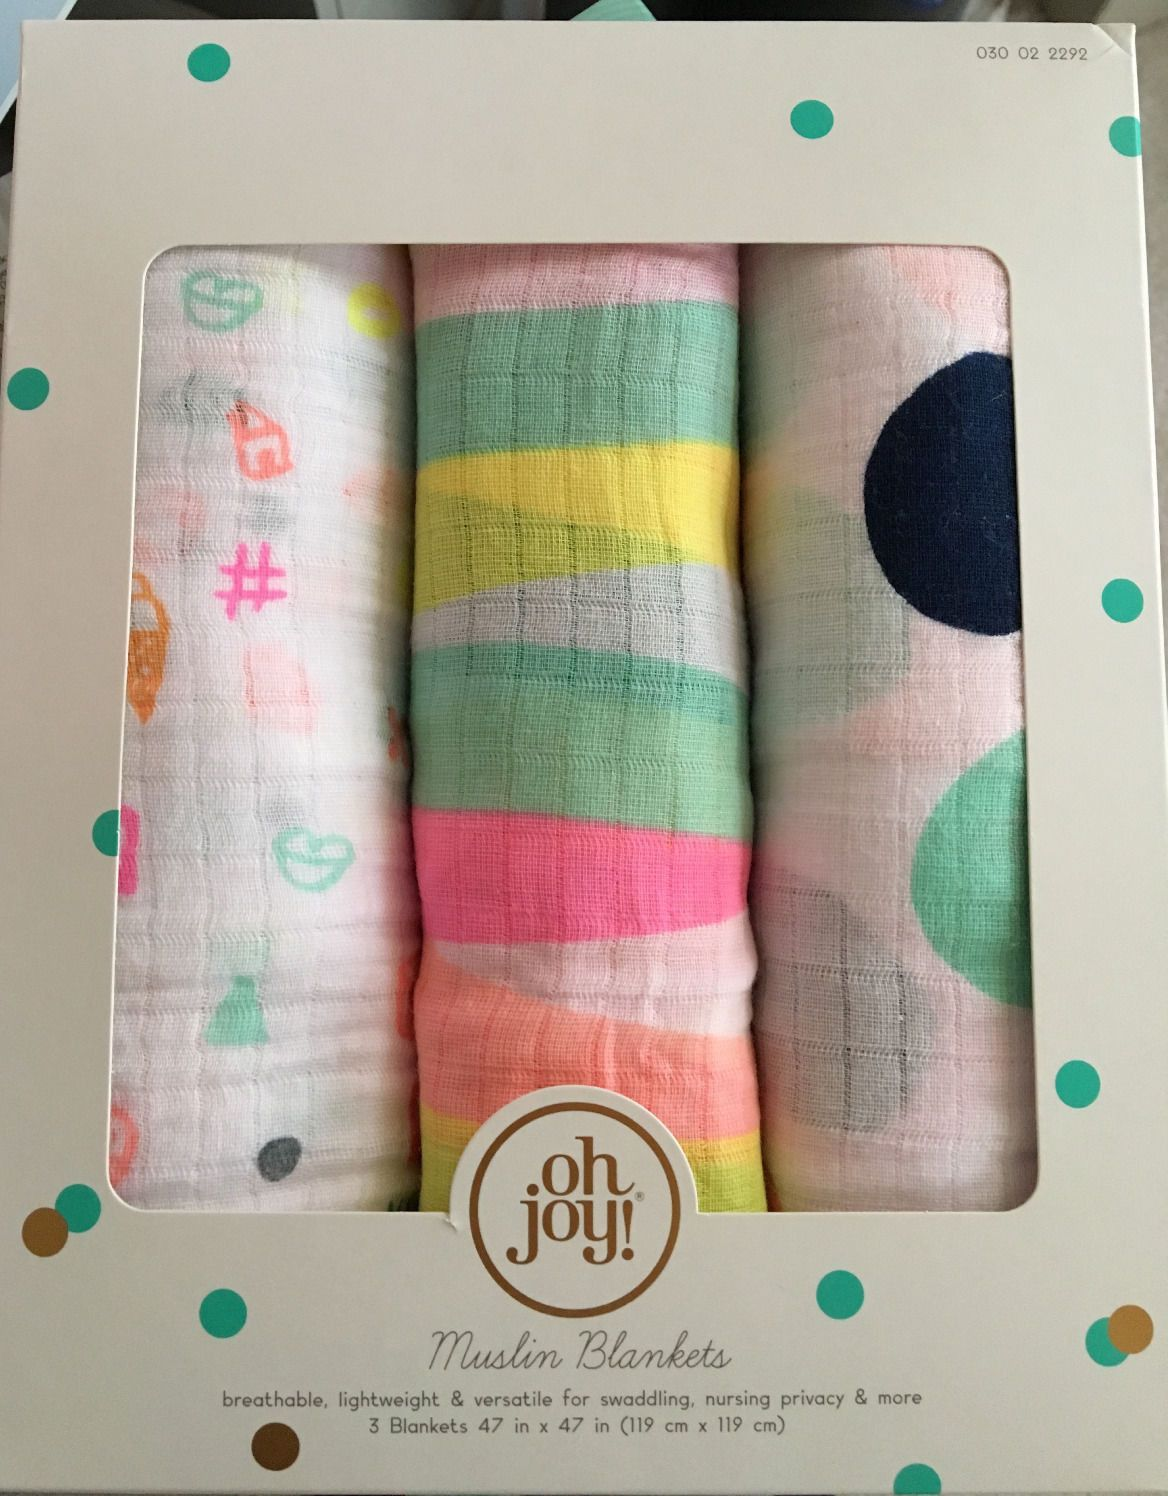 Swaddle Blankets Target Interesting Nib Oh Joy Target Baby Muslin 3 Swaddling Blankets Pack Hard To Find Design Decoration